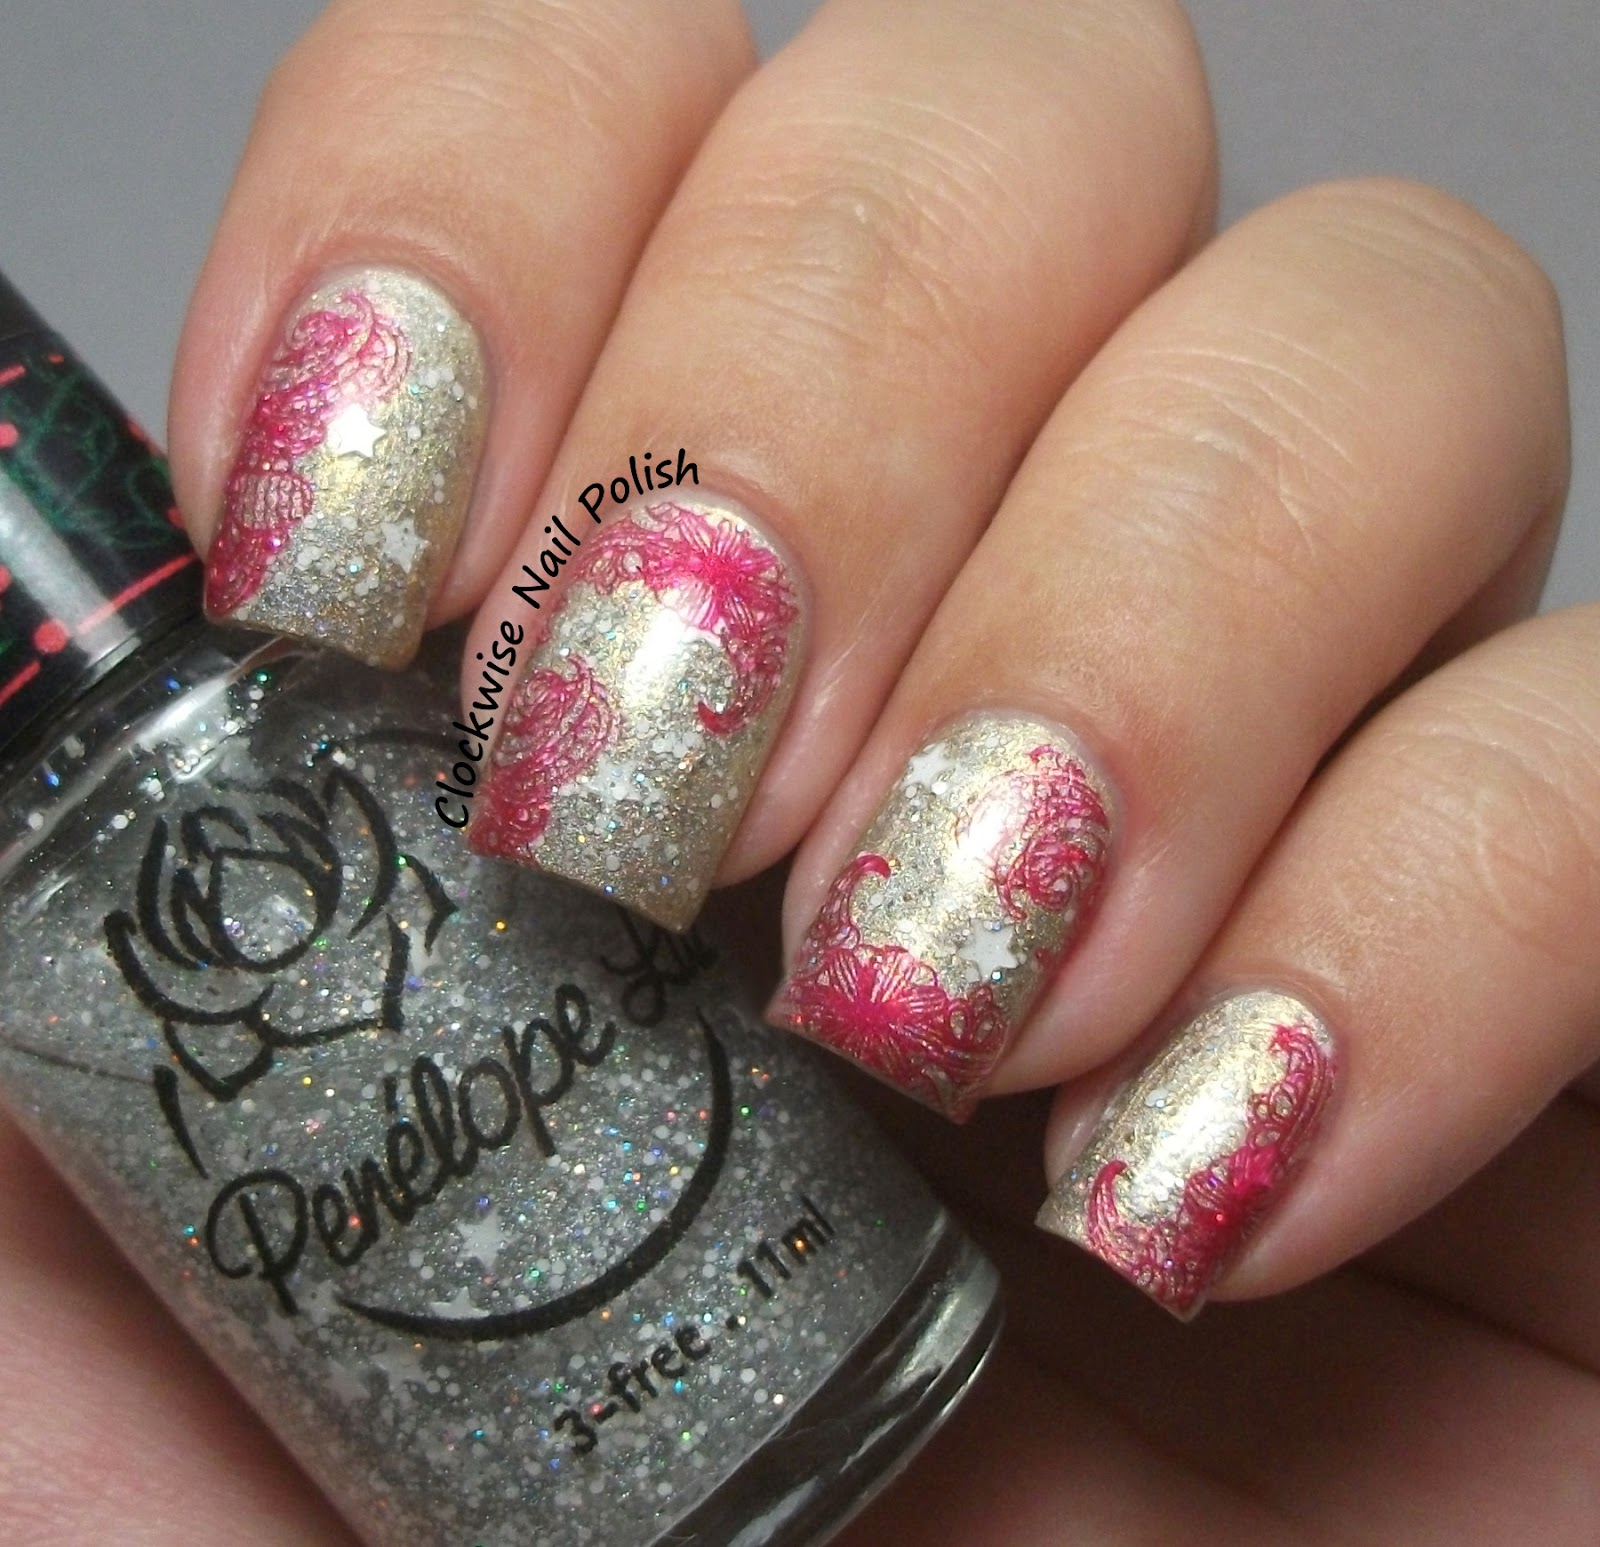 Uber Chic UB 3-01 Stamping Plate Review | Unhas chiques